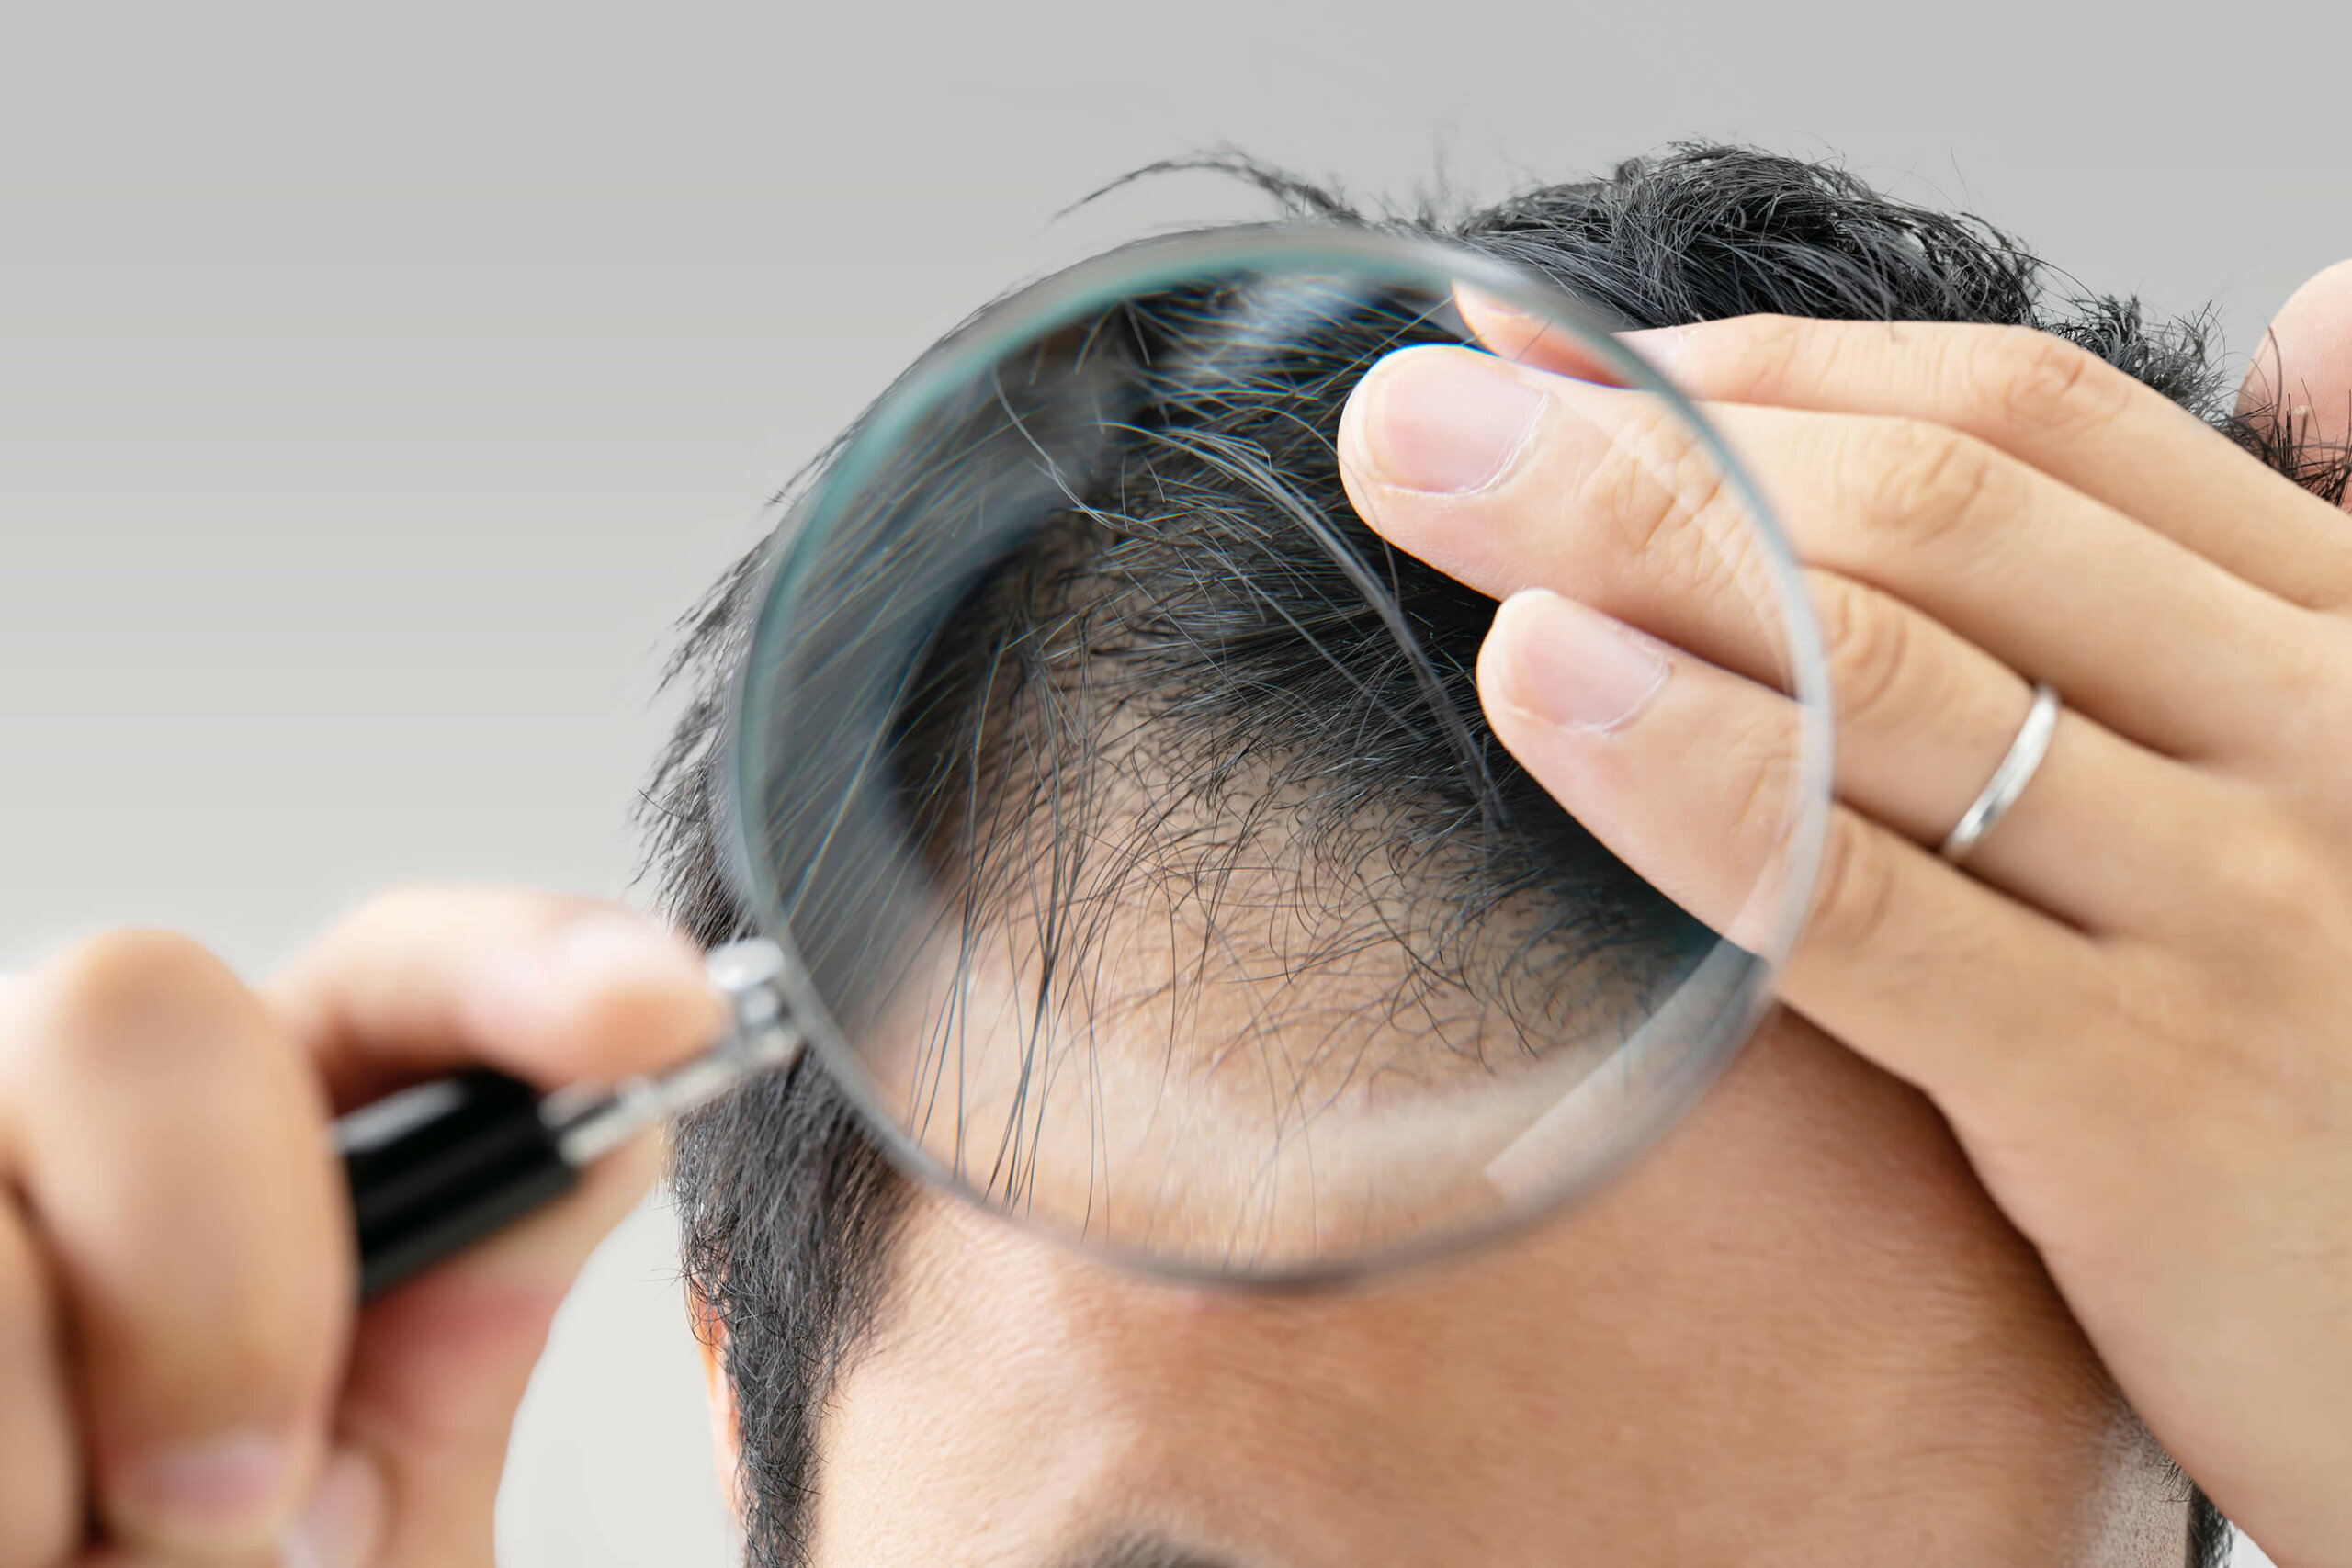 Close up of a man inspecting his hairline with a magnifying glass